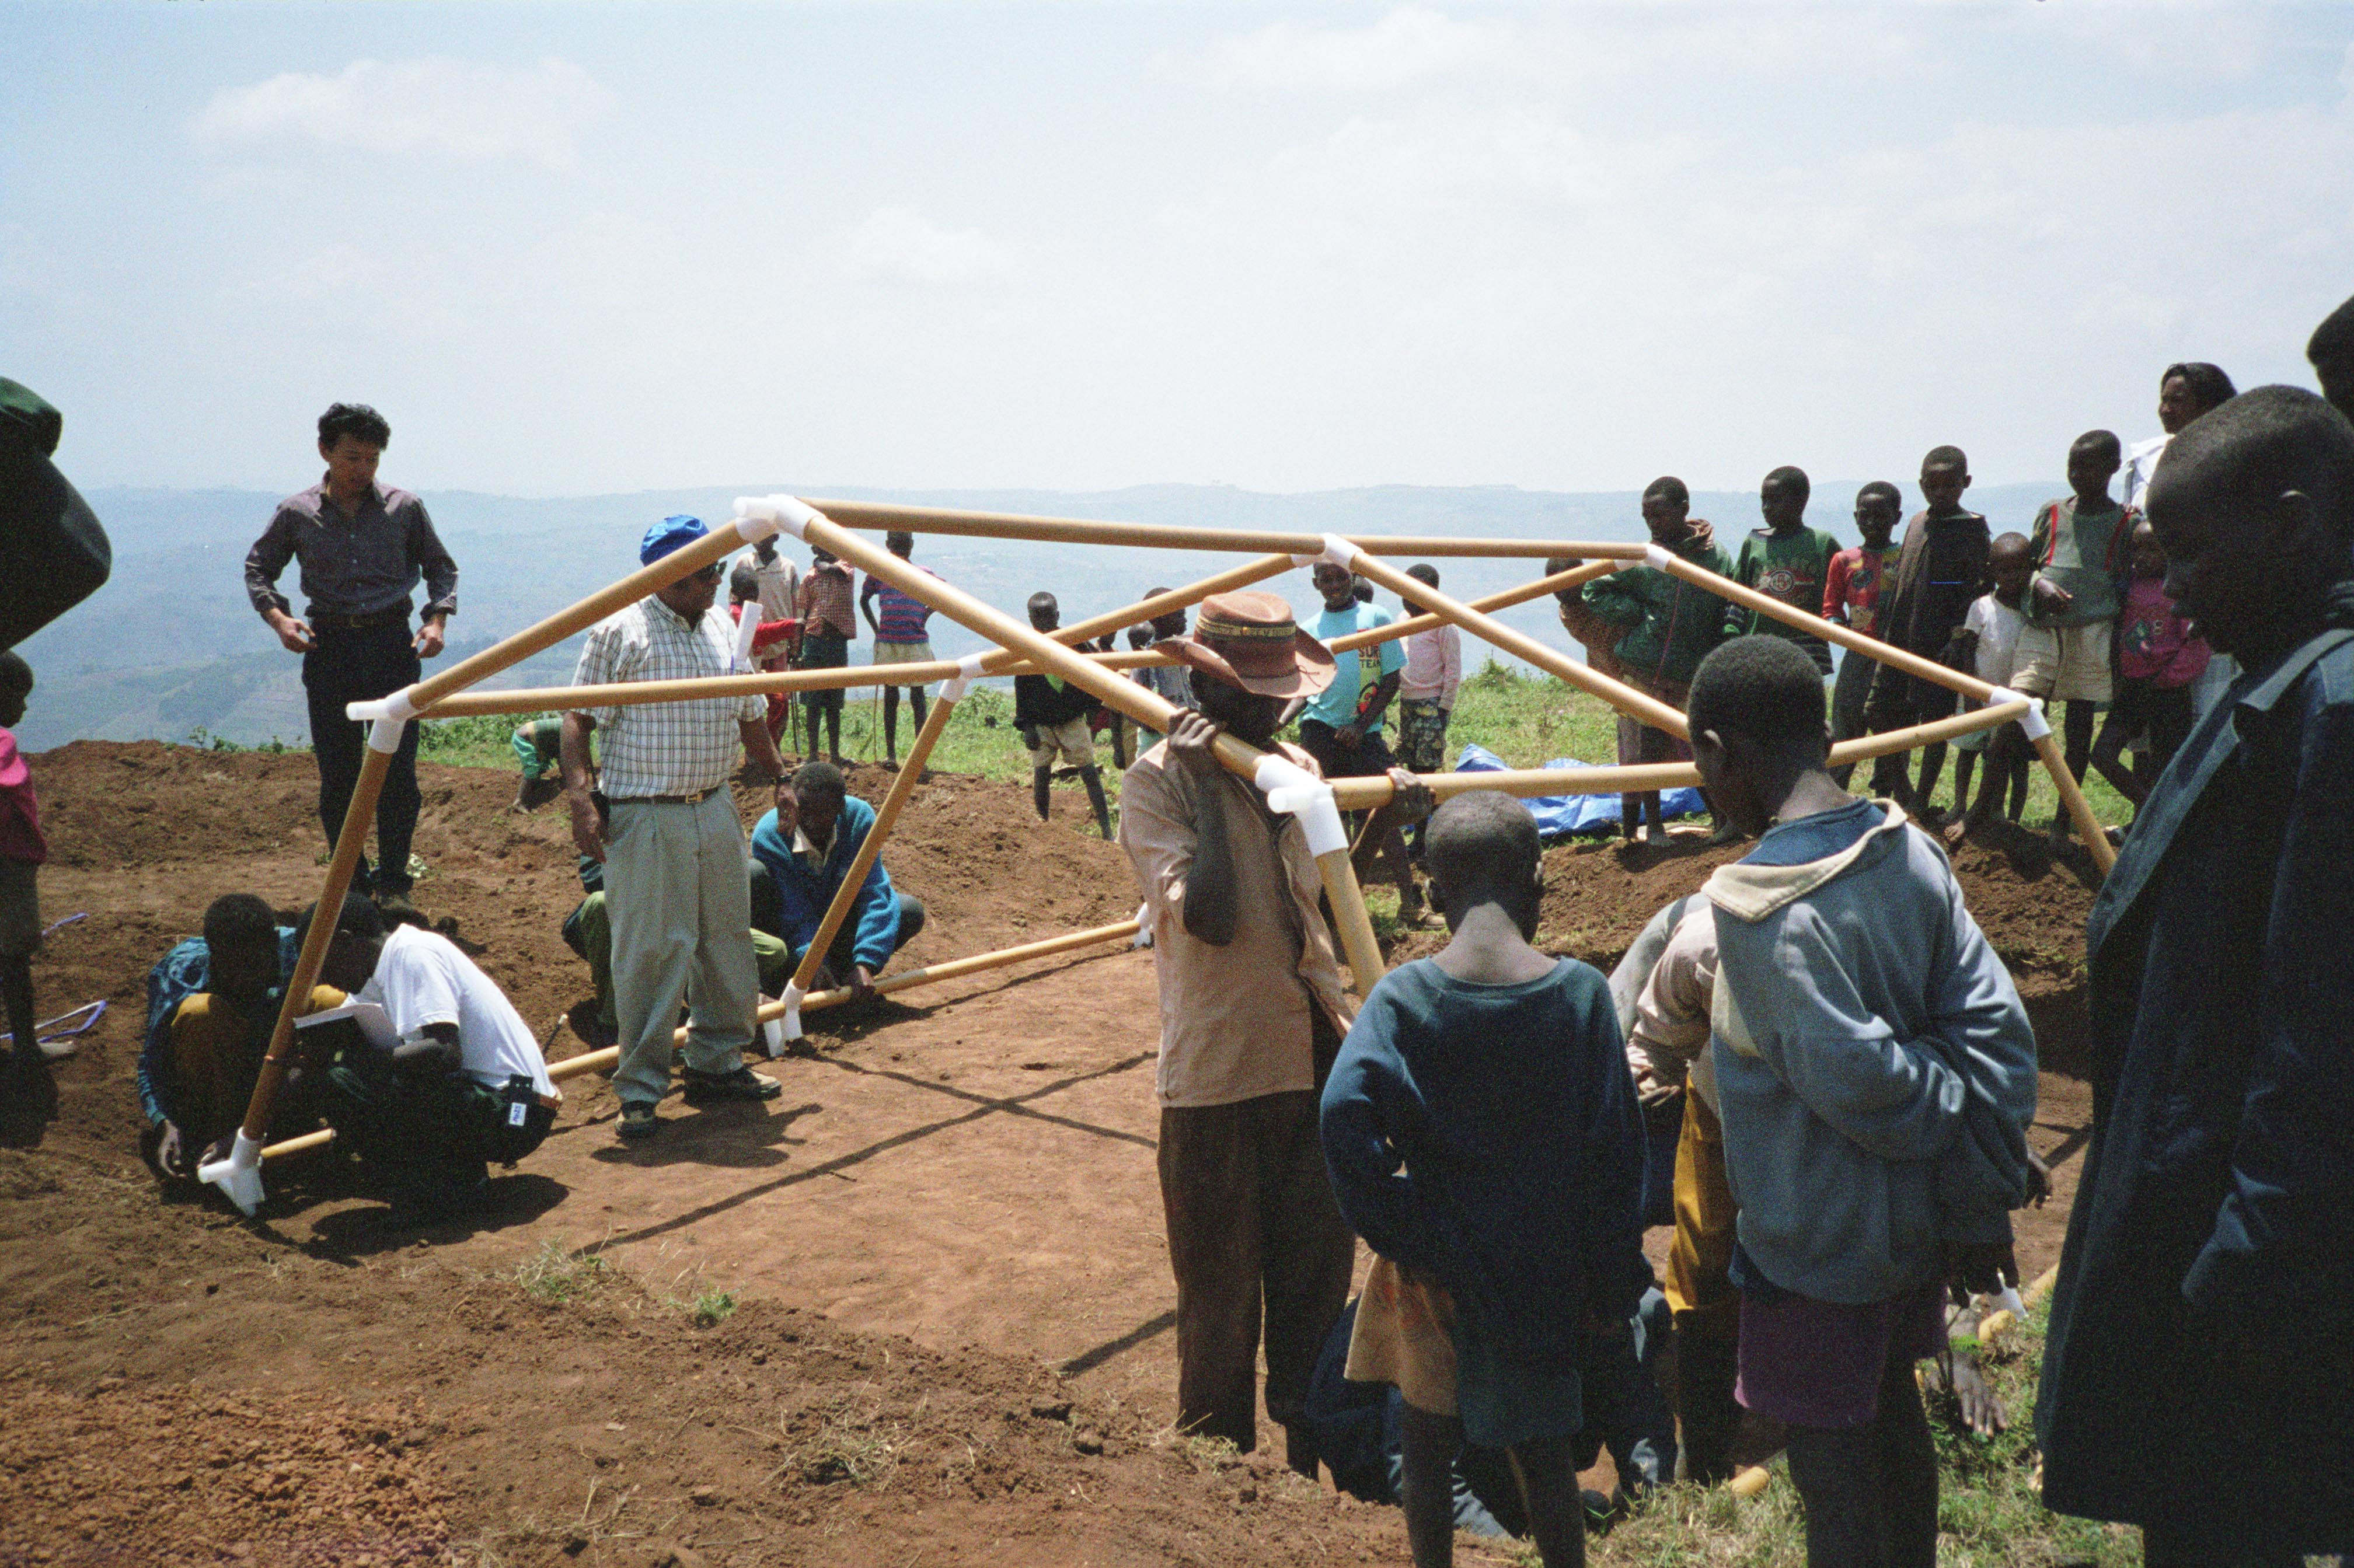 Ban designed temporary shelters for refugees displaced by the civil war in Rwanda in 1994.